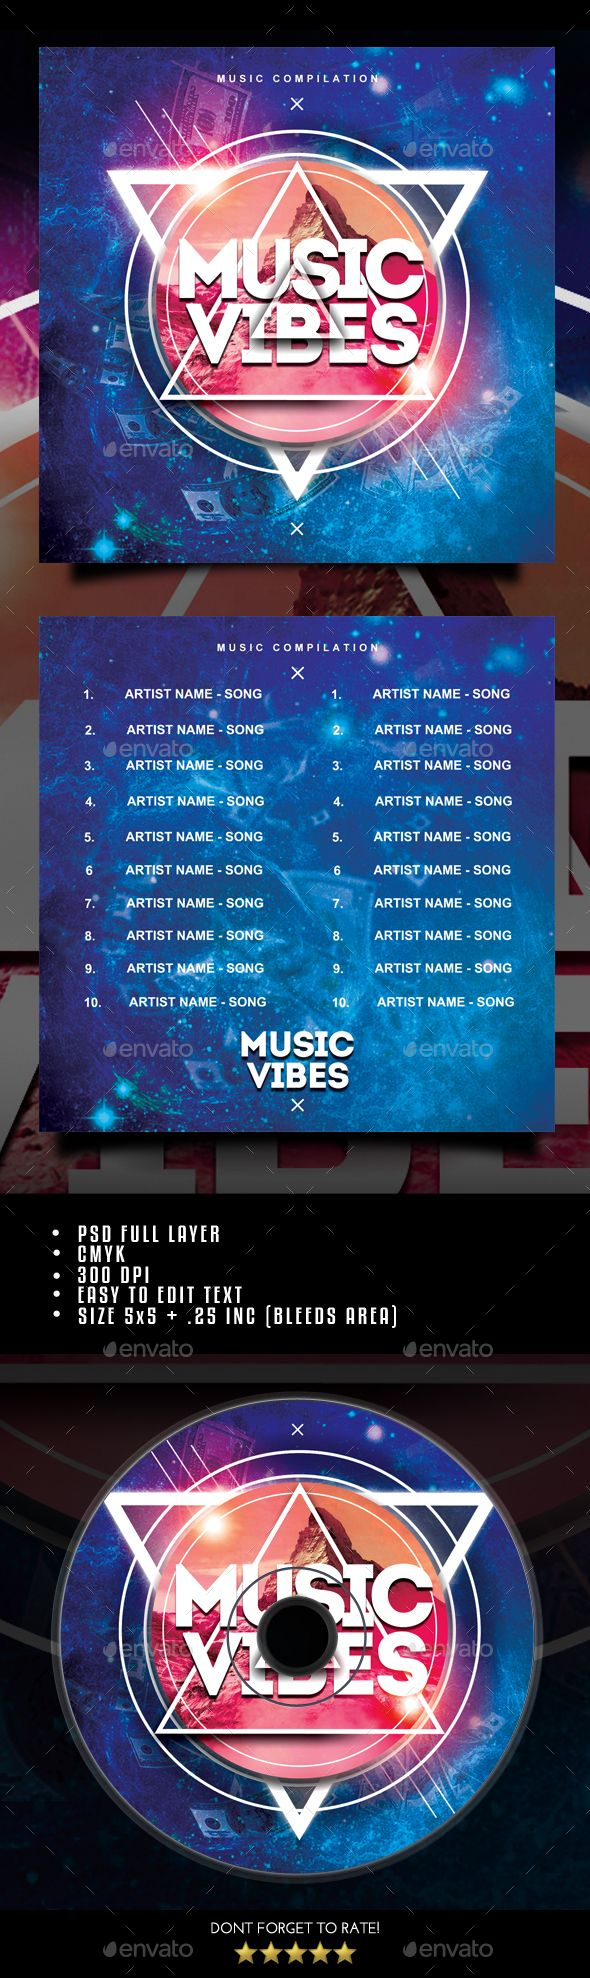 Music Vibes CD #Cover - #CD & #DVD Artwork Print #Templates Download here: https://graphicriver.net/item/music-vibes-cd-cover/19496702?ref=alena994